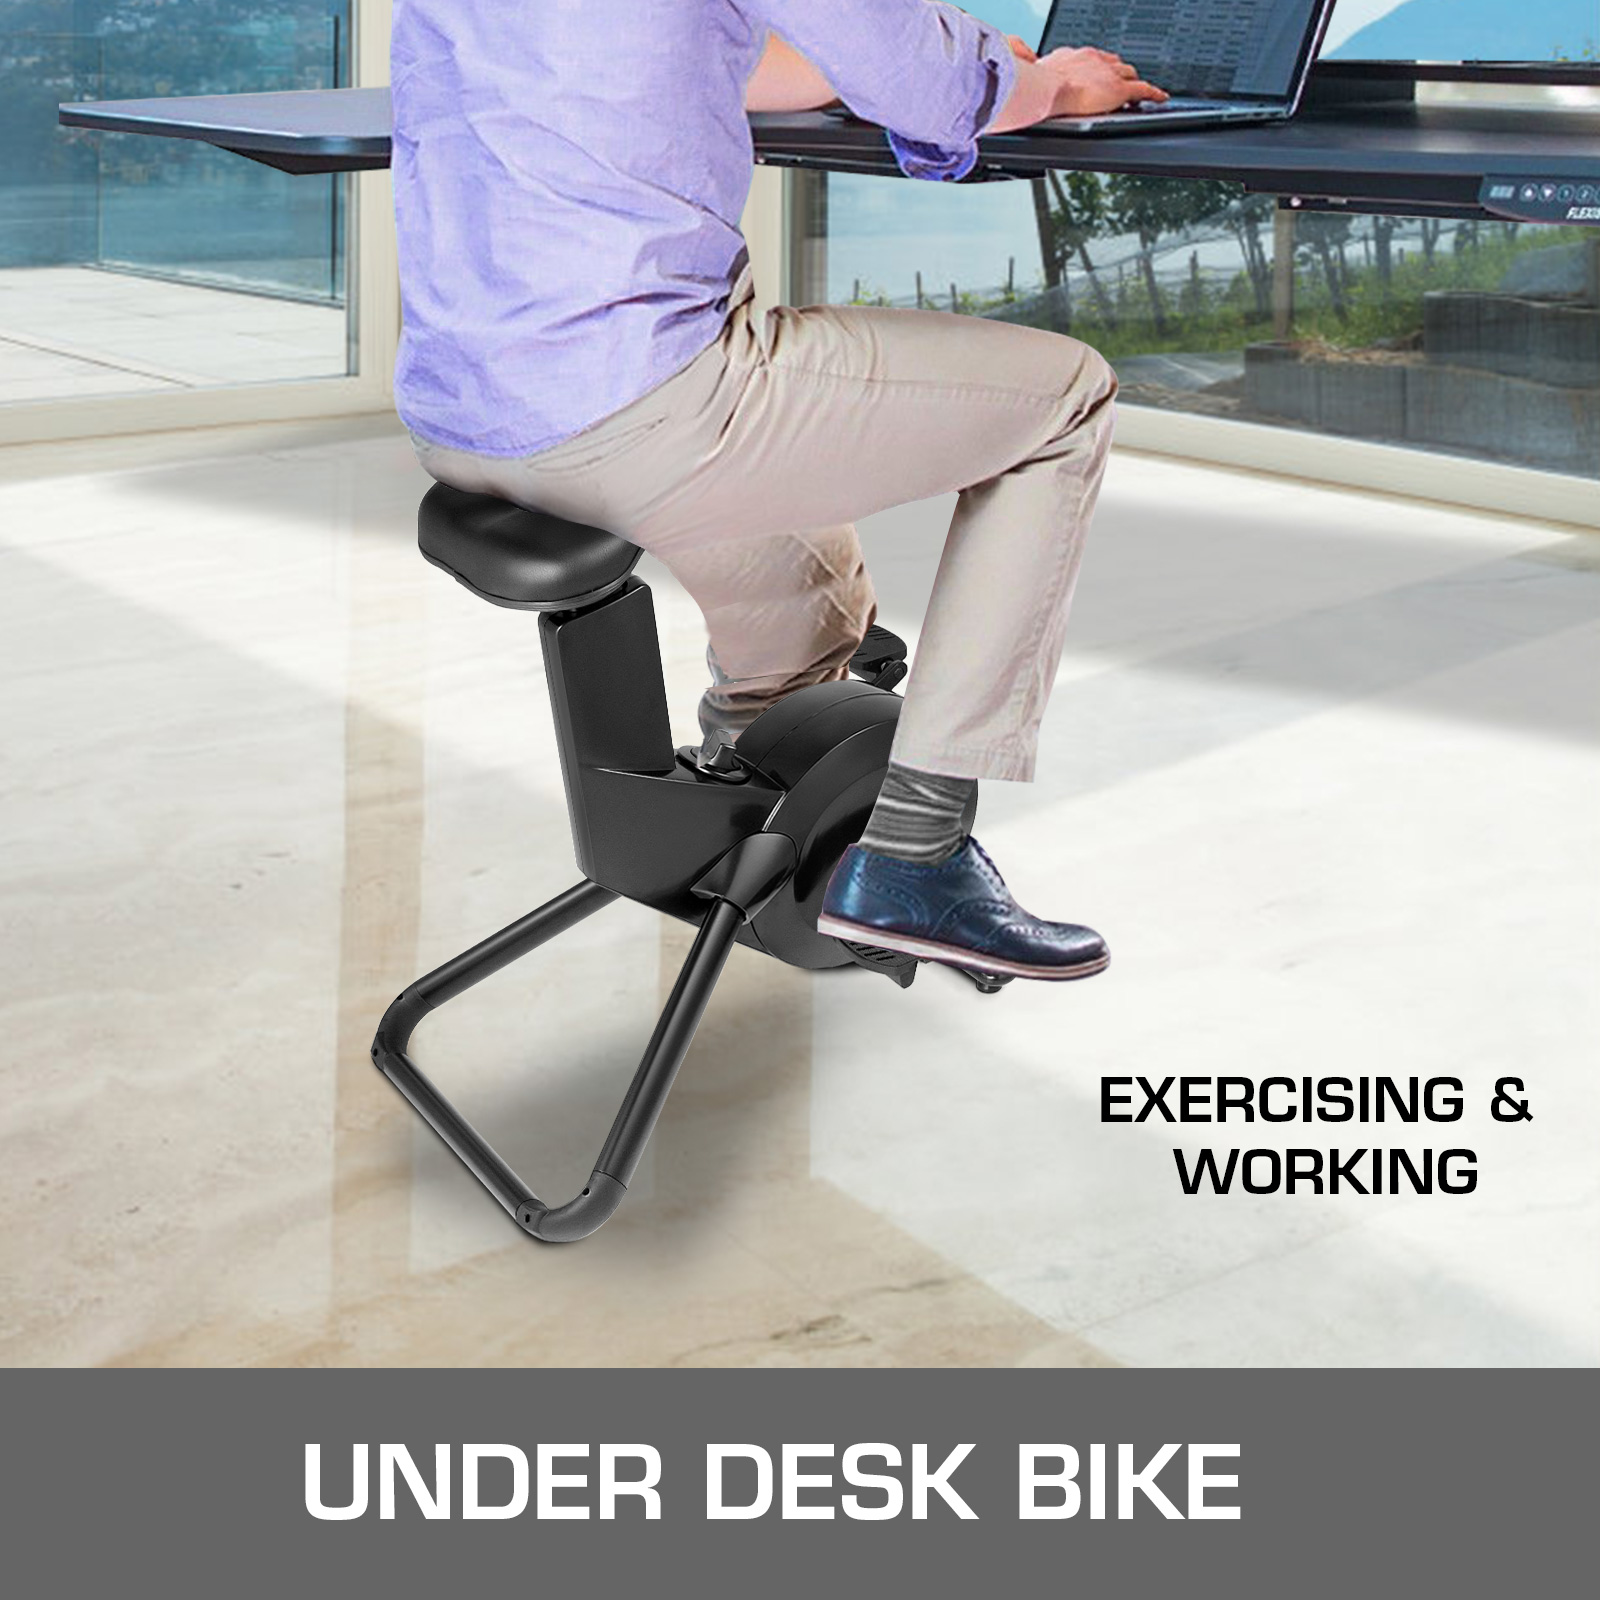 Multi-style-Magnetic-Exercise-Bike-office-Bicycle-under-Desk-Fitness-Cardio miniature 103